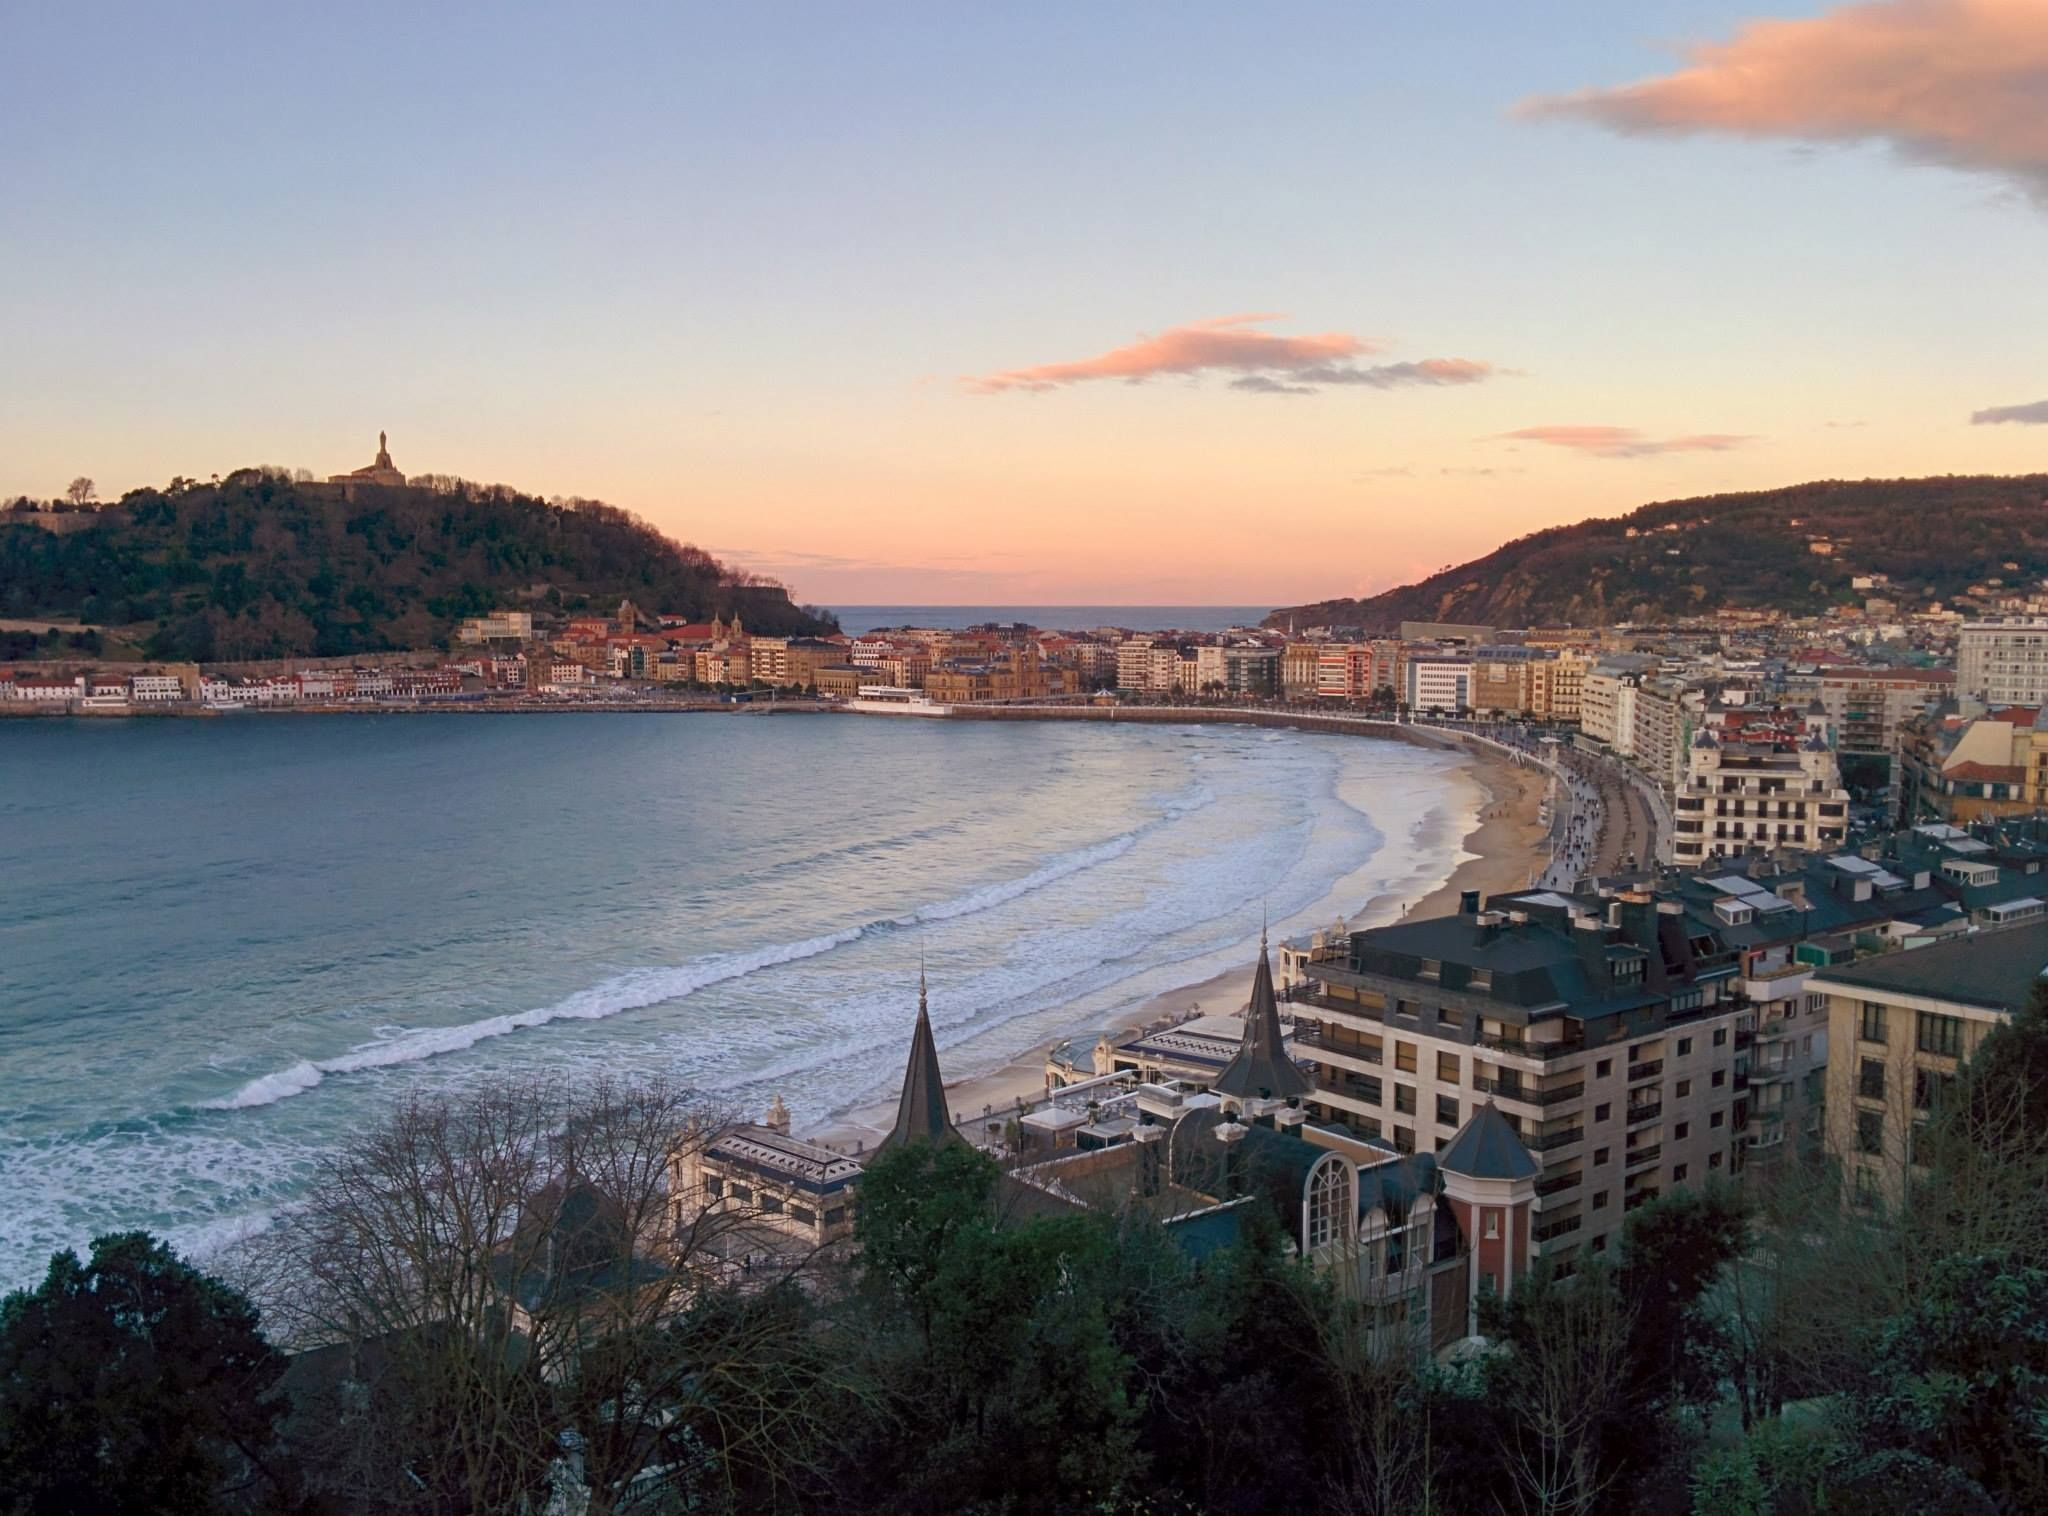 View Of The Sunsetting Across Mount Urgull And Old Town San Sebastian From The Balcony Of Far Out Inn Come See This View For Baskenland Spanje Zuid Frankrijk